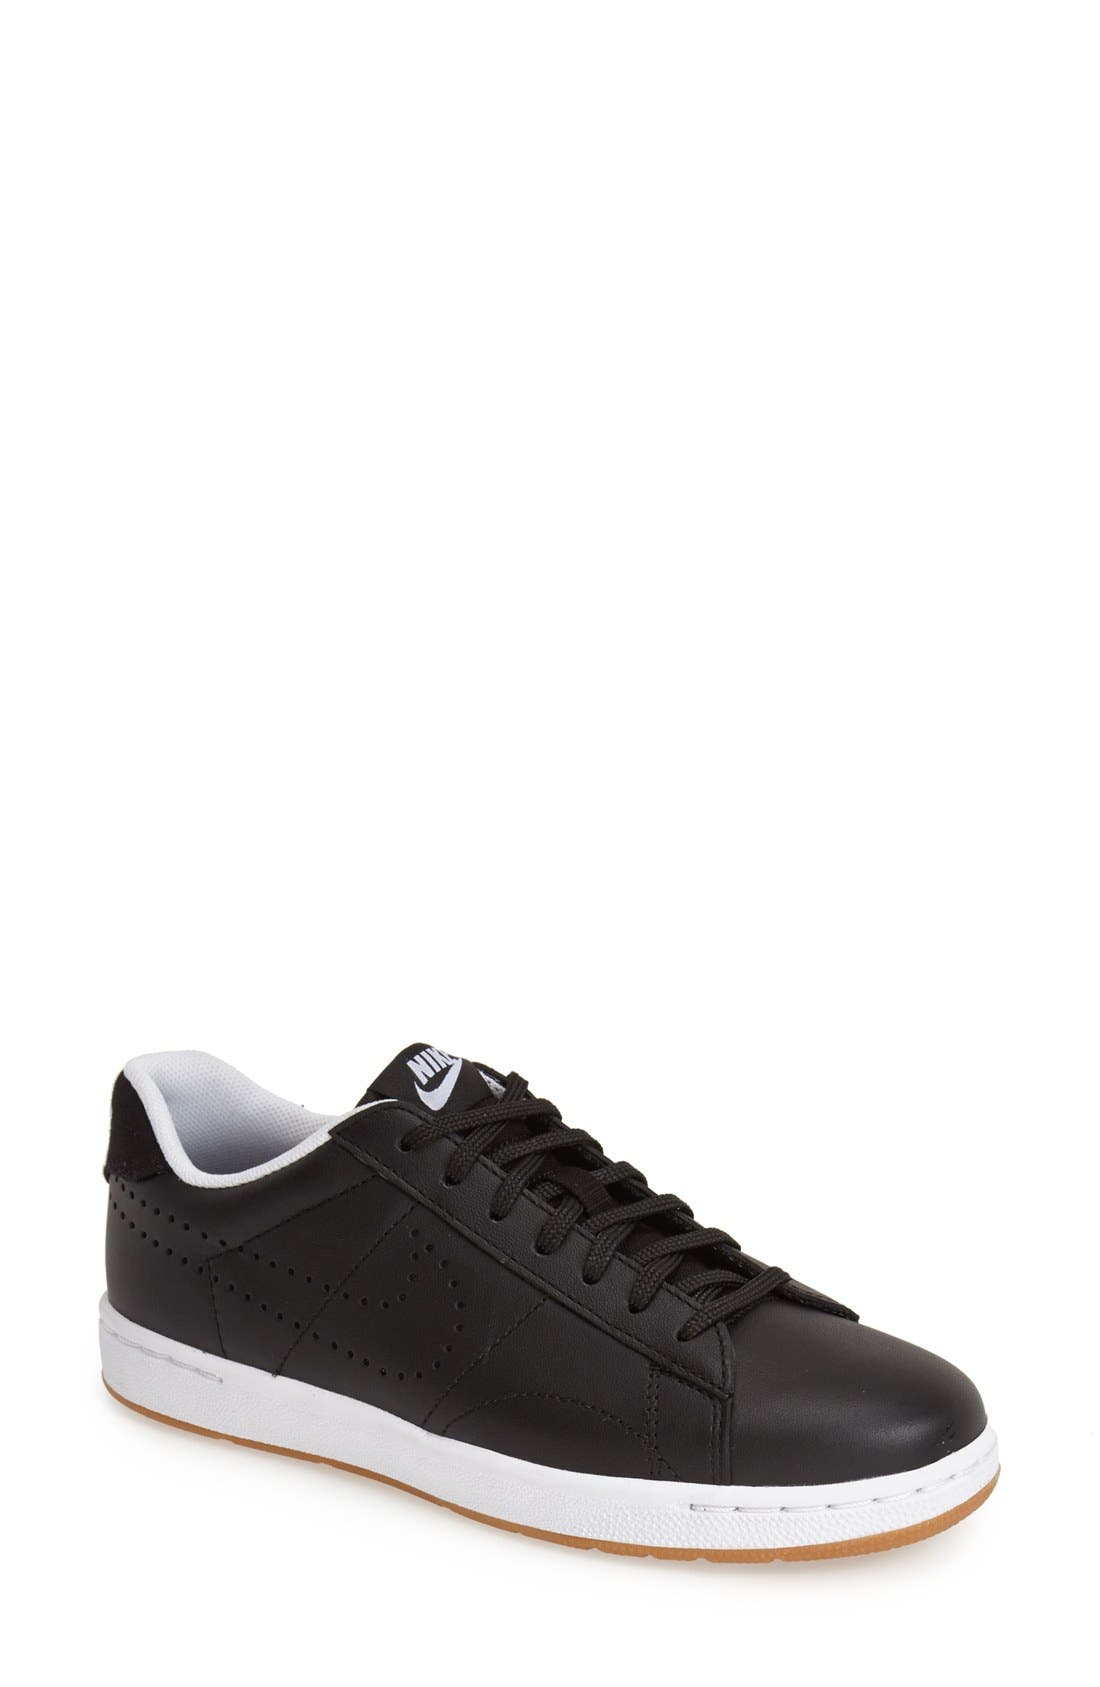 'Classic Ultra' Leather Sneaker,                             Main thumbnail 1, color,